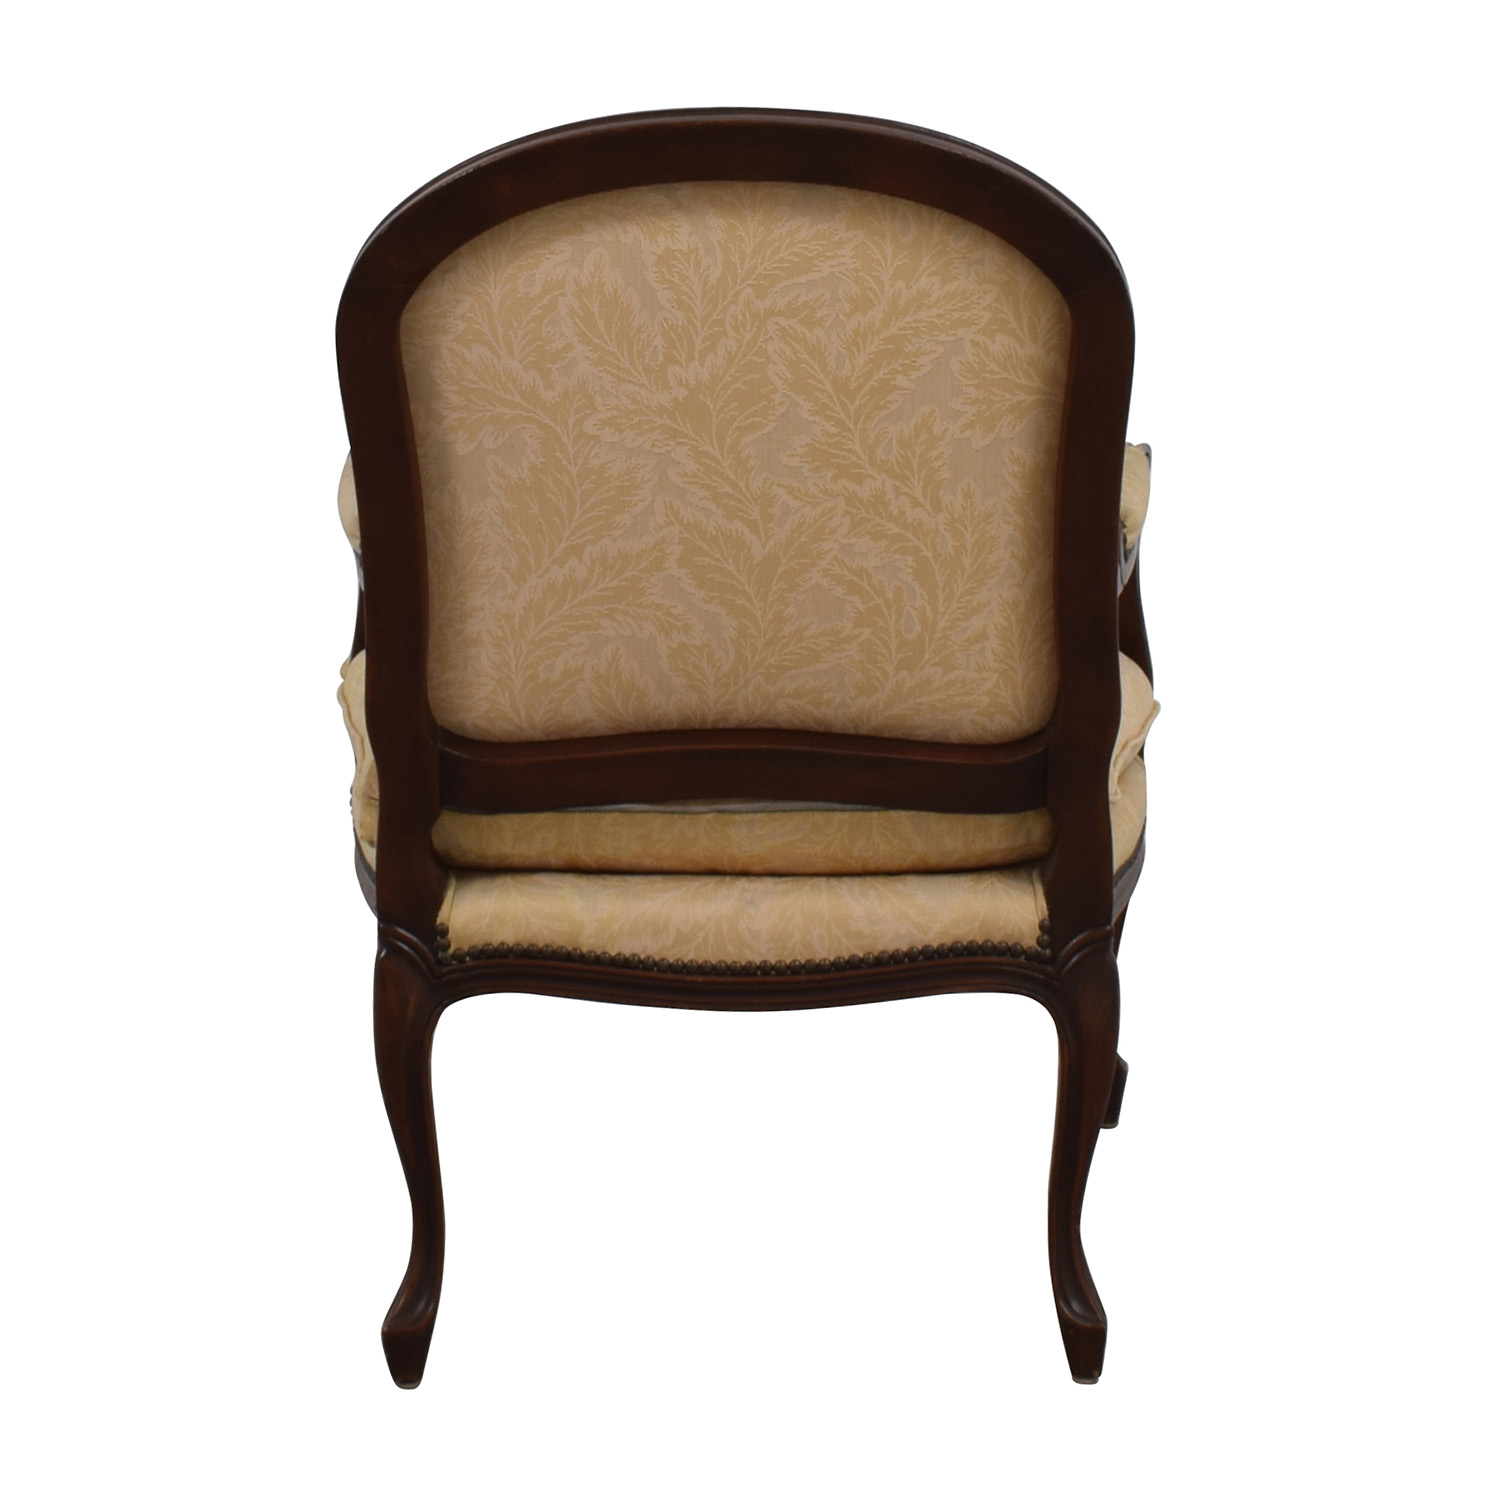 75 Off Gold Floral Jacquard Upholstered Studded Accent